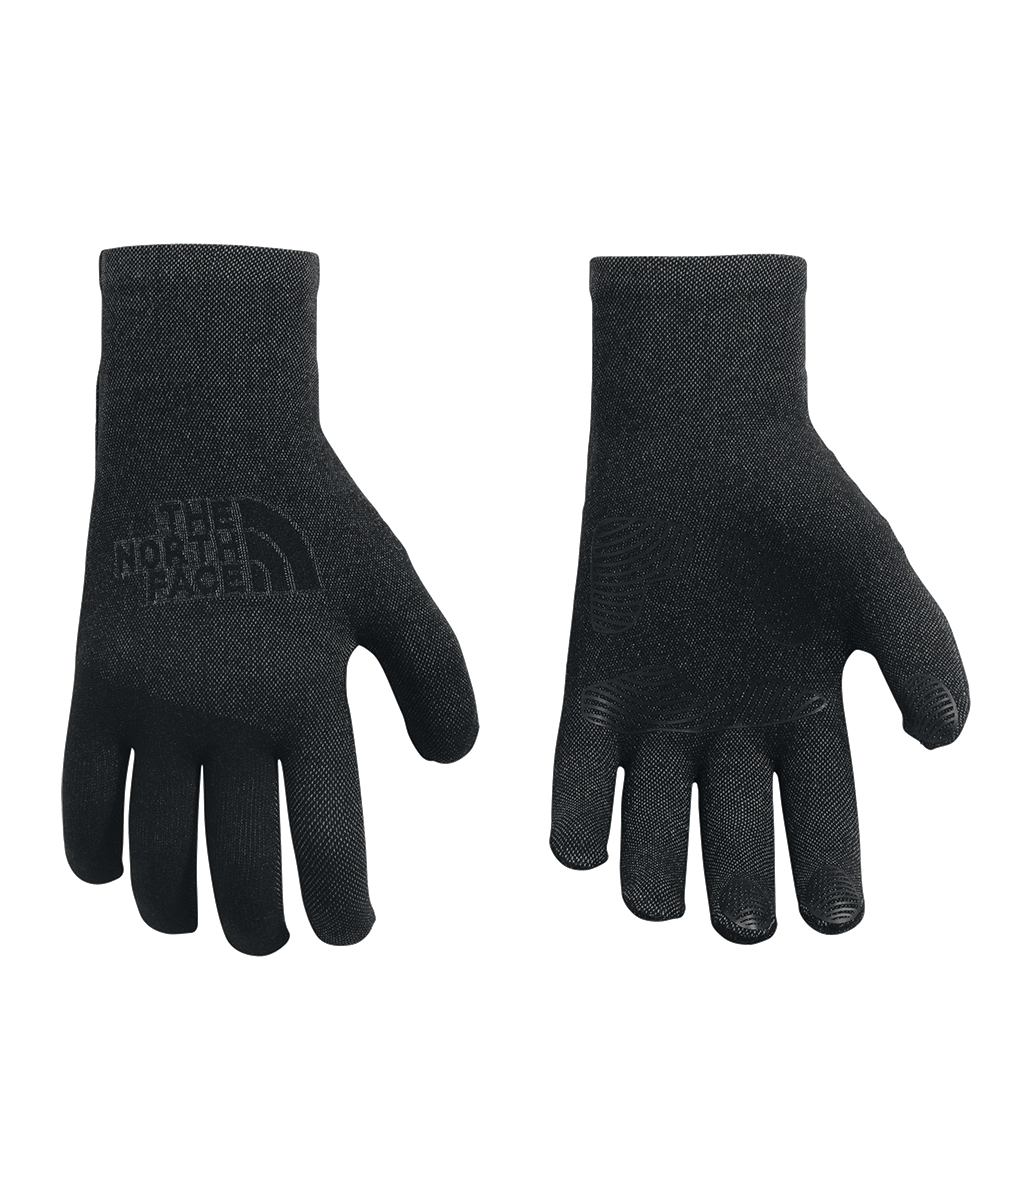 The North Face Women's Etip™ Knit Glove NF0A3M5M F9